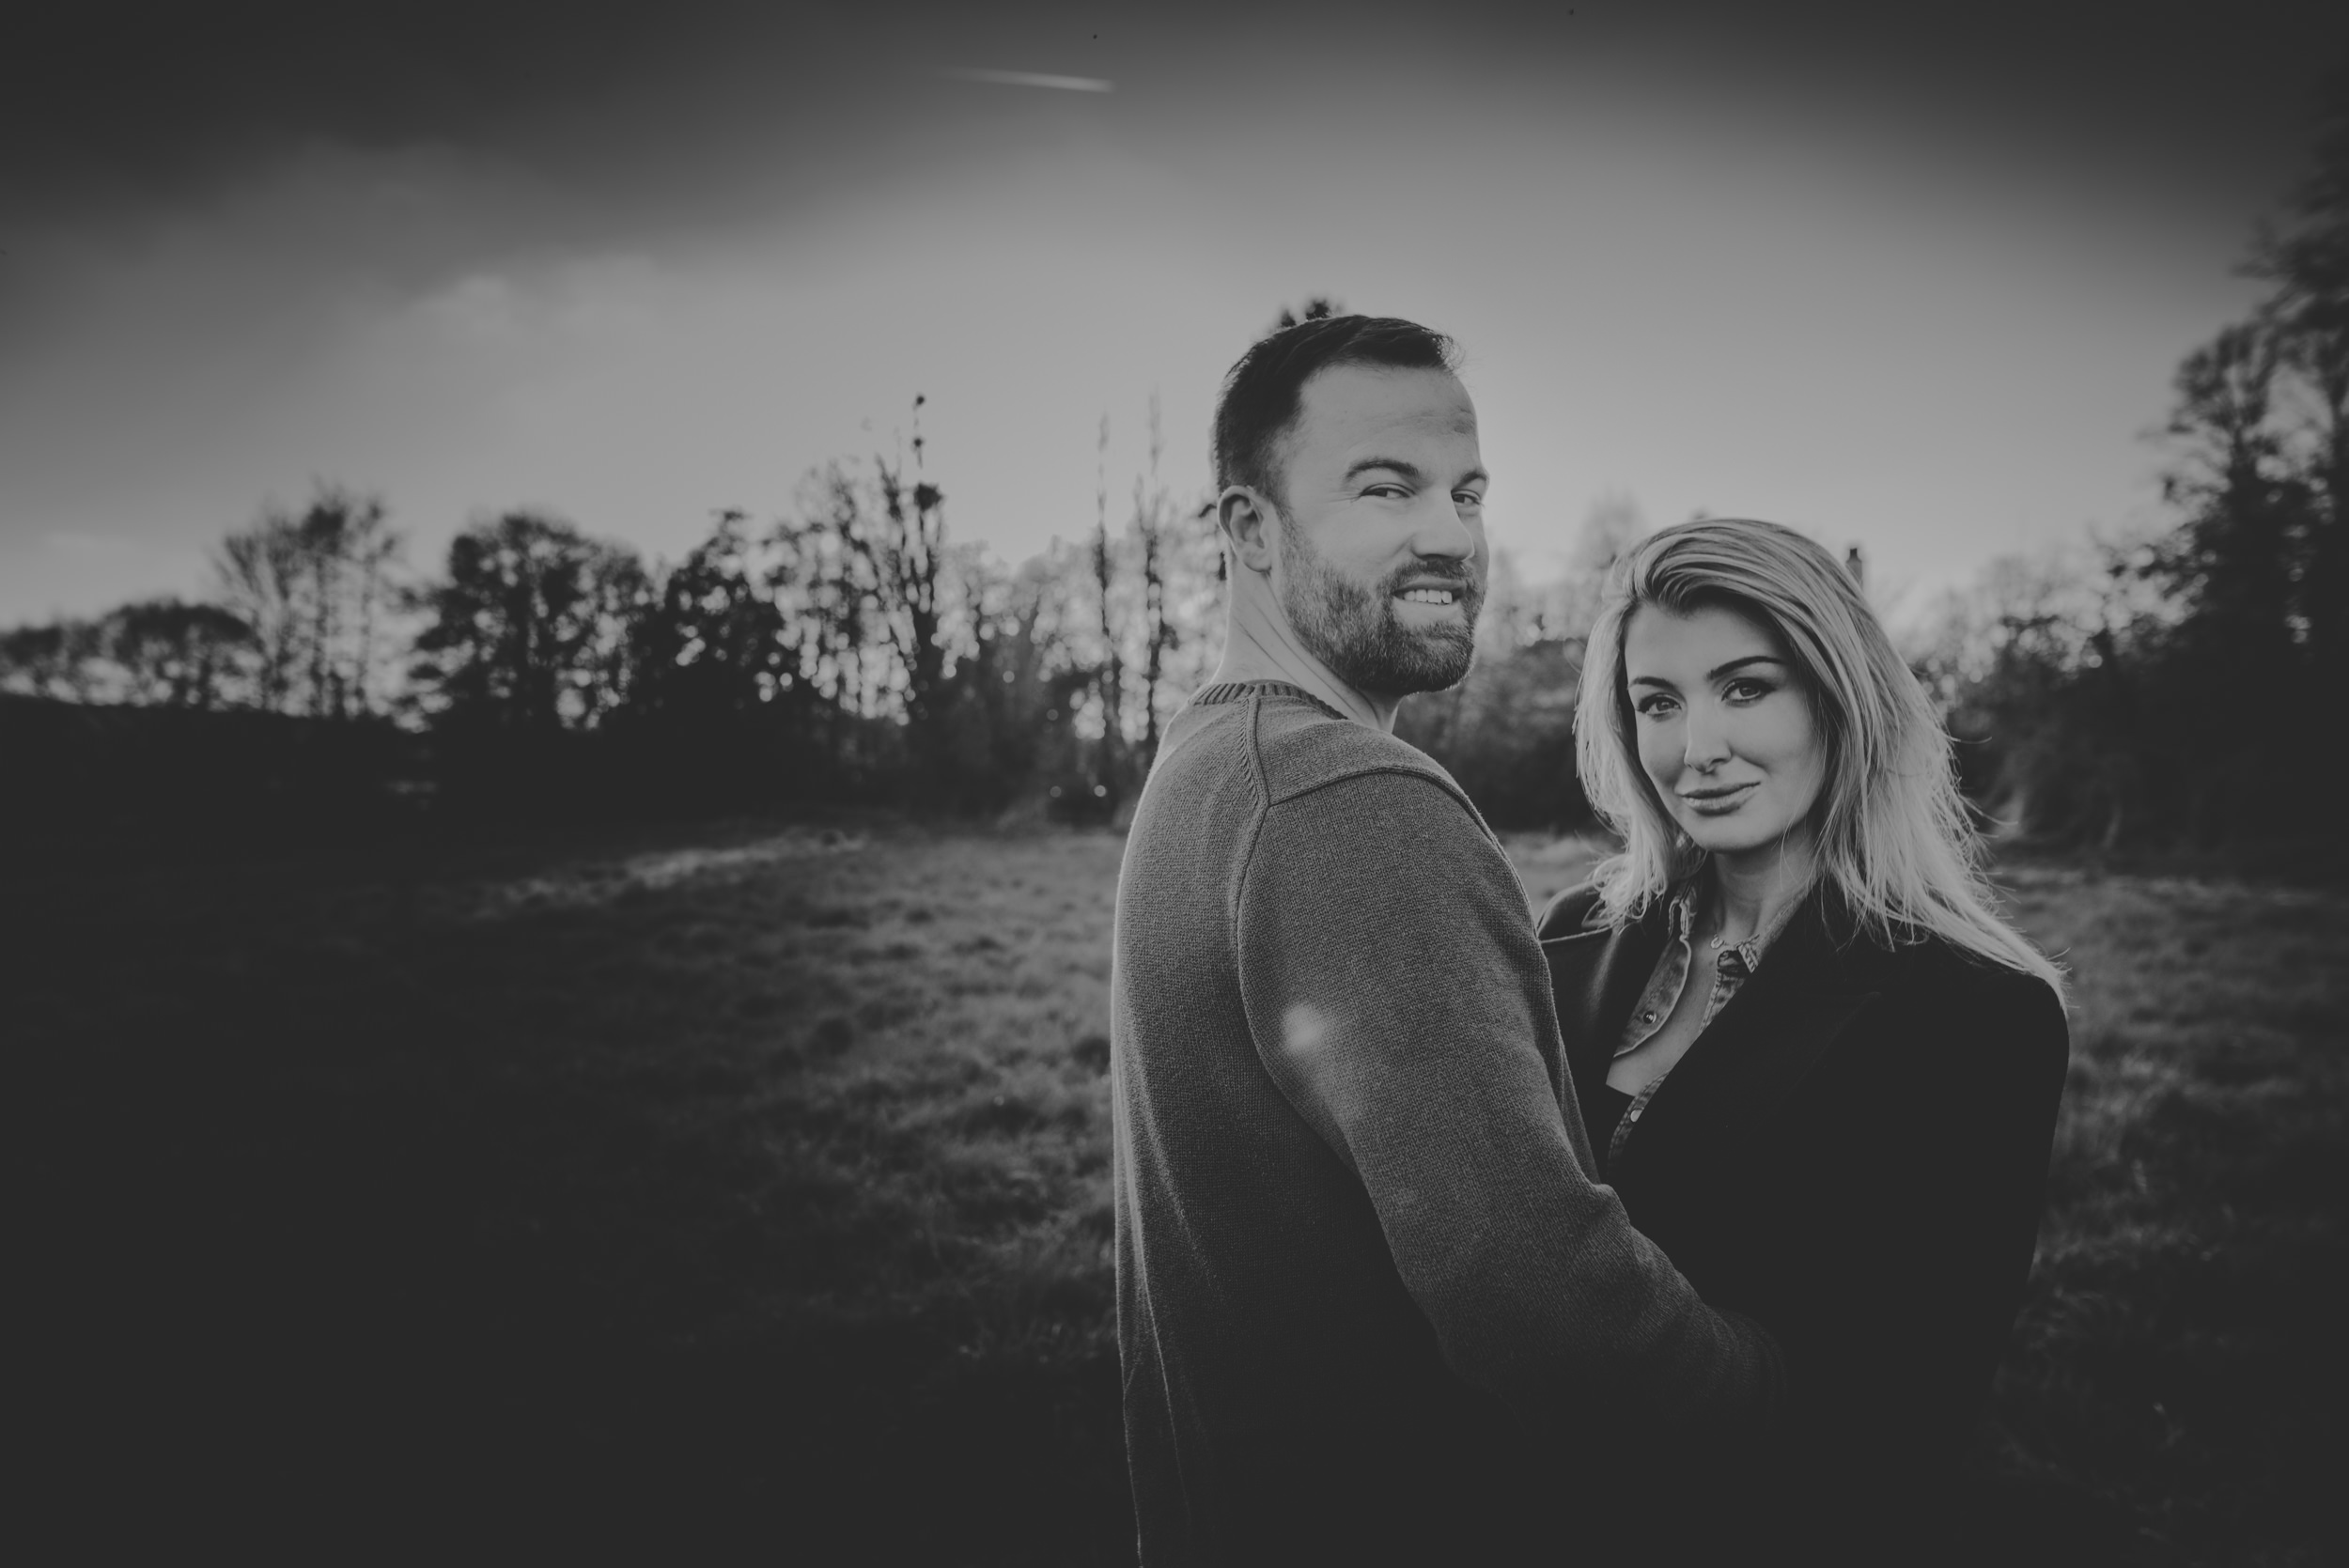 Hannah-and-James-Engagement-Session-Henley-on-Thames-Oxfordshire-Manu-Mendoza-Wedding-Photography-052.jpg